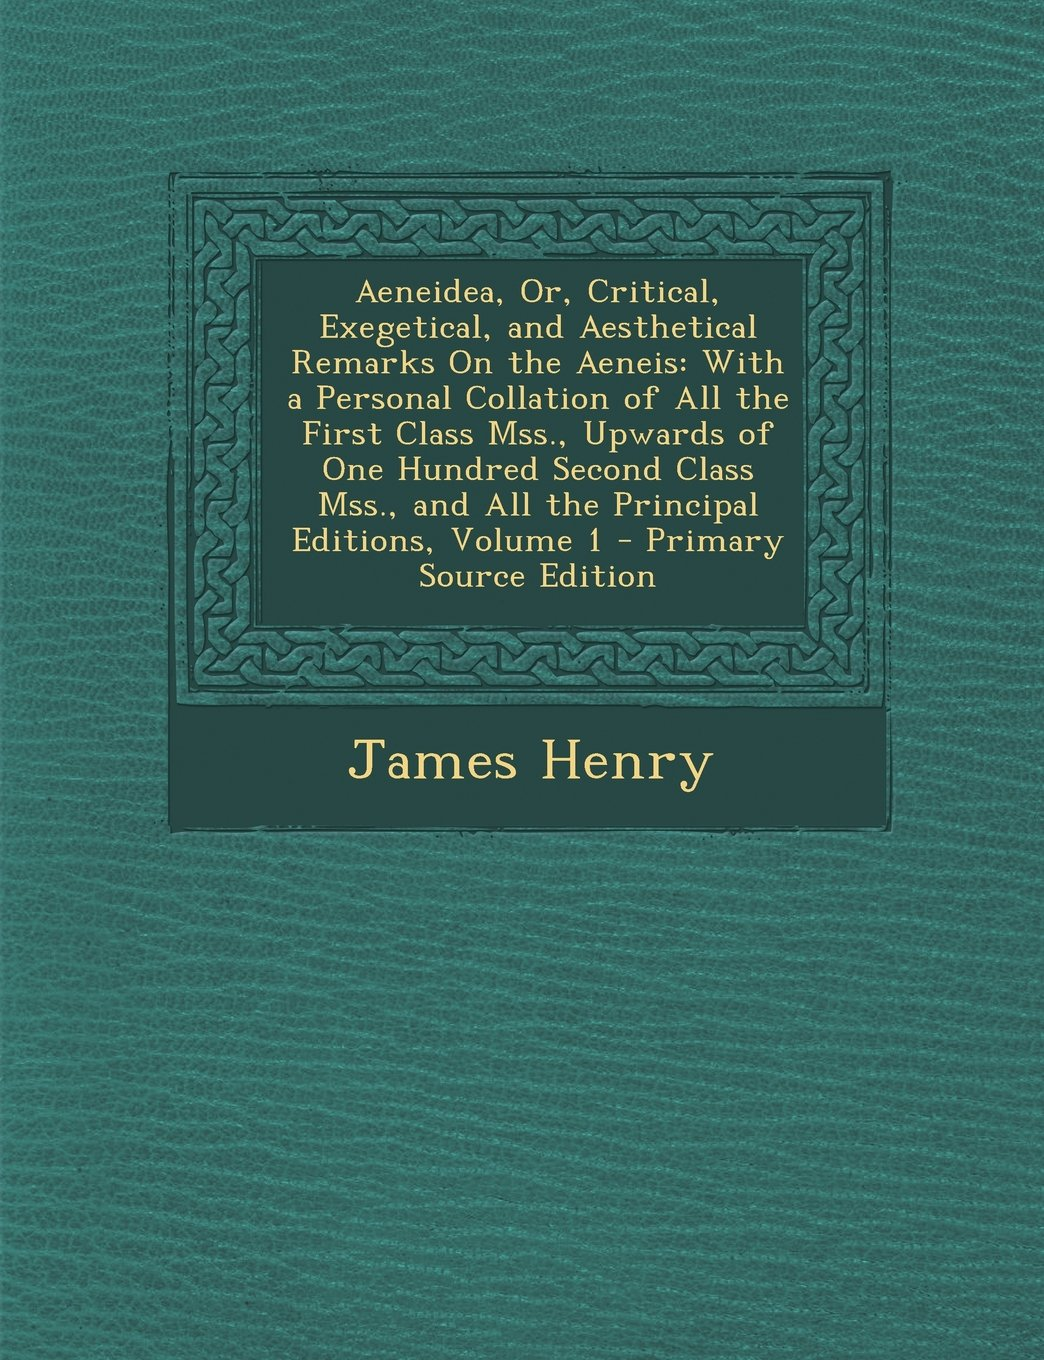 Download Aeneidea, Or, Critical, Exegetical, and Aesthetical Remarks On the Aeneis: With a Personal Collation of All the First Class Mss, Upwards of One and All the Principal Editions, Volume 1 PDF